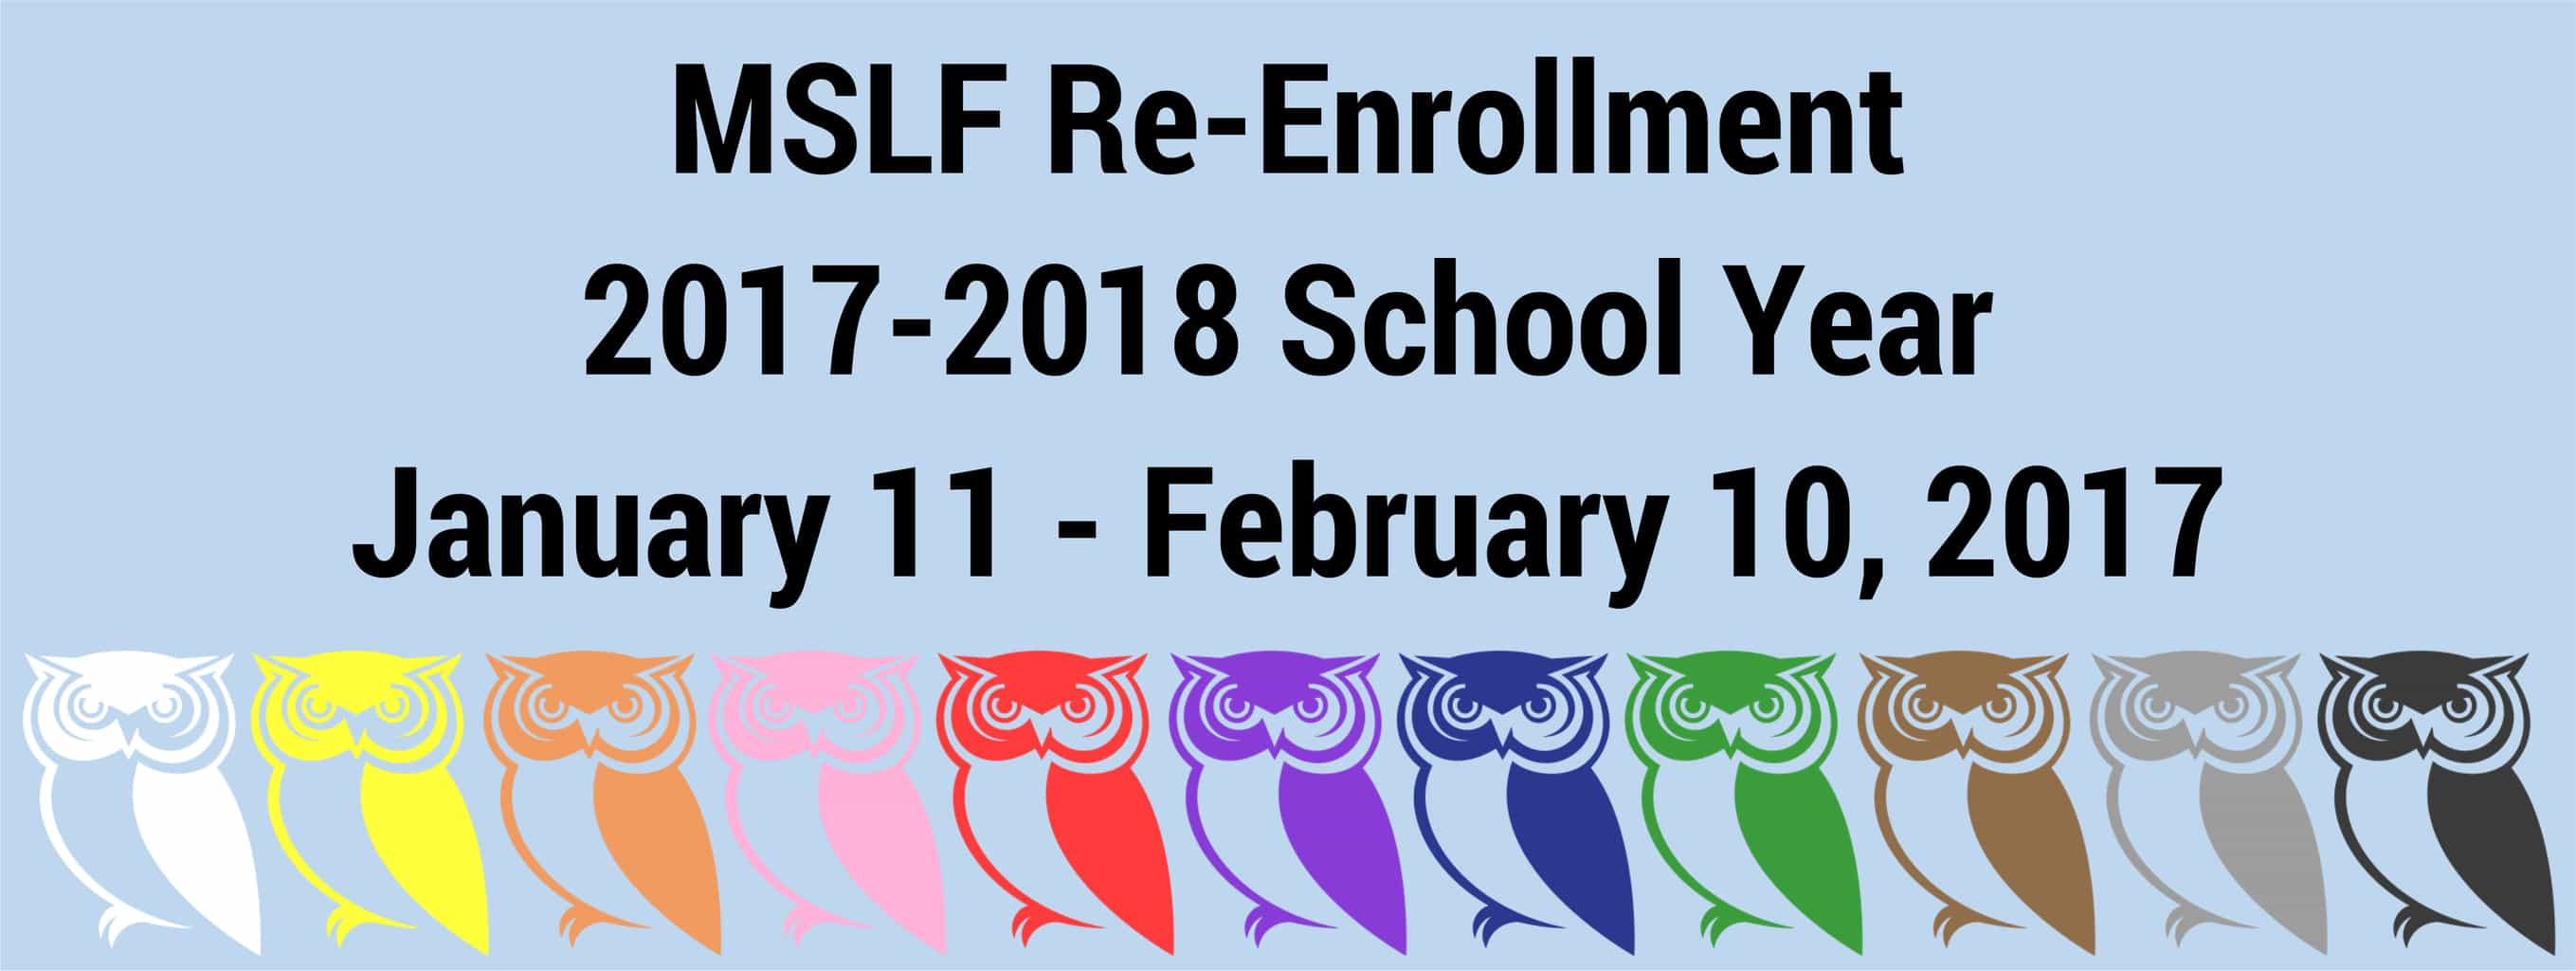 Re-enrollment For 2017-2018 School Year